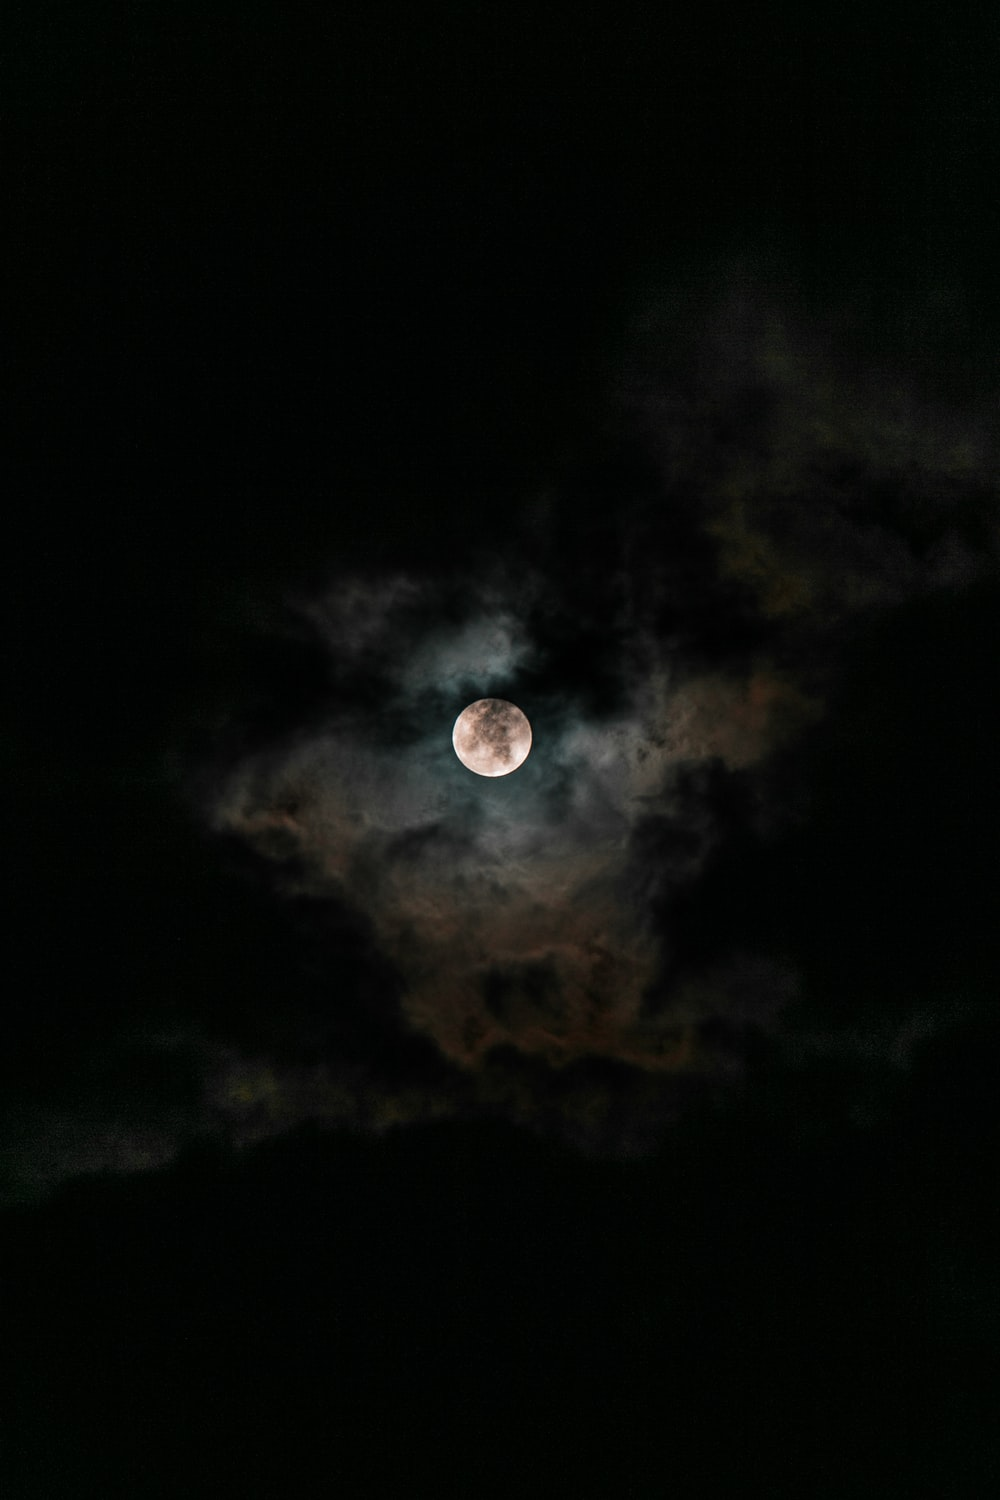 moon covered with clouds at nighttime